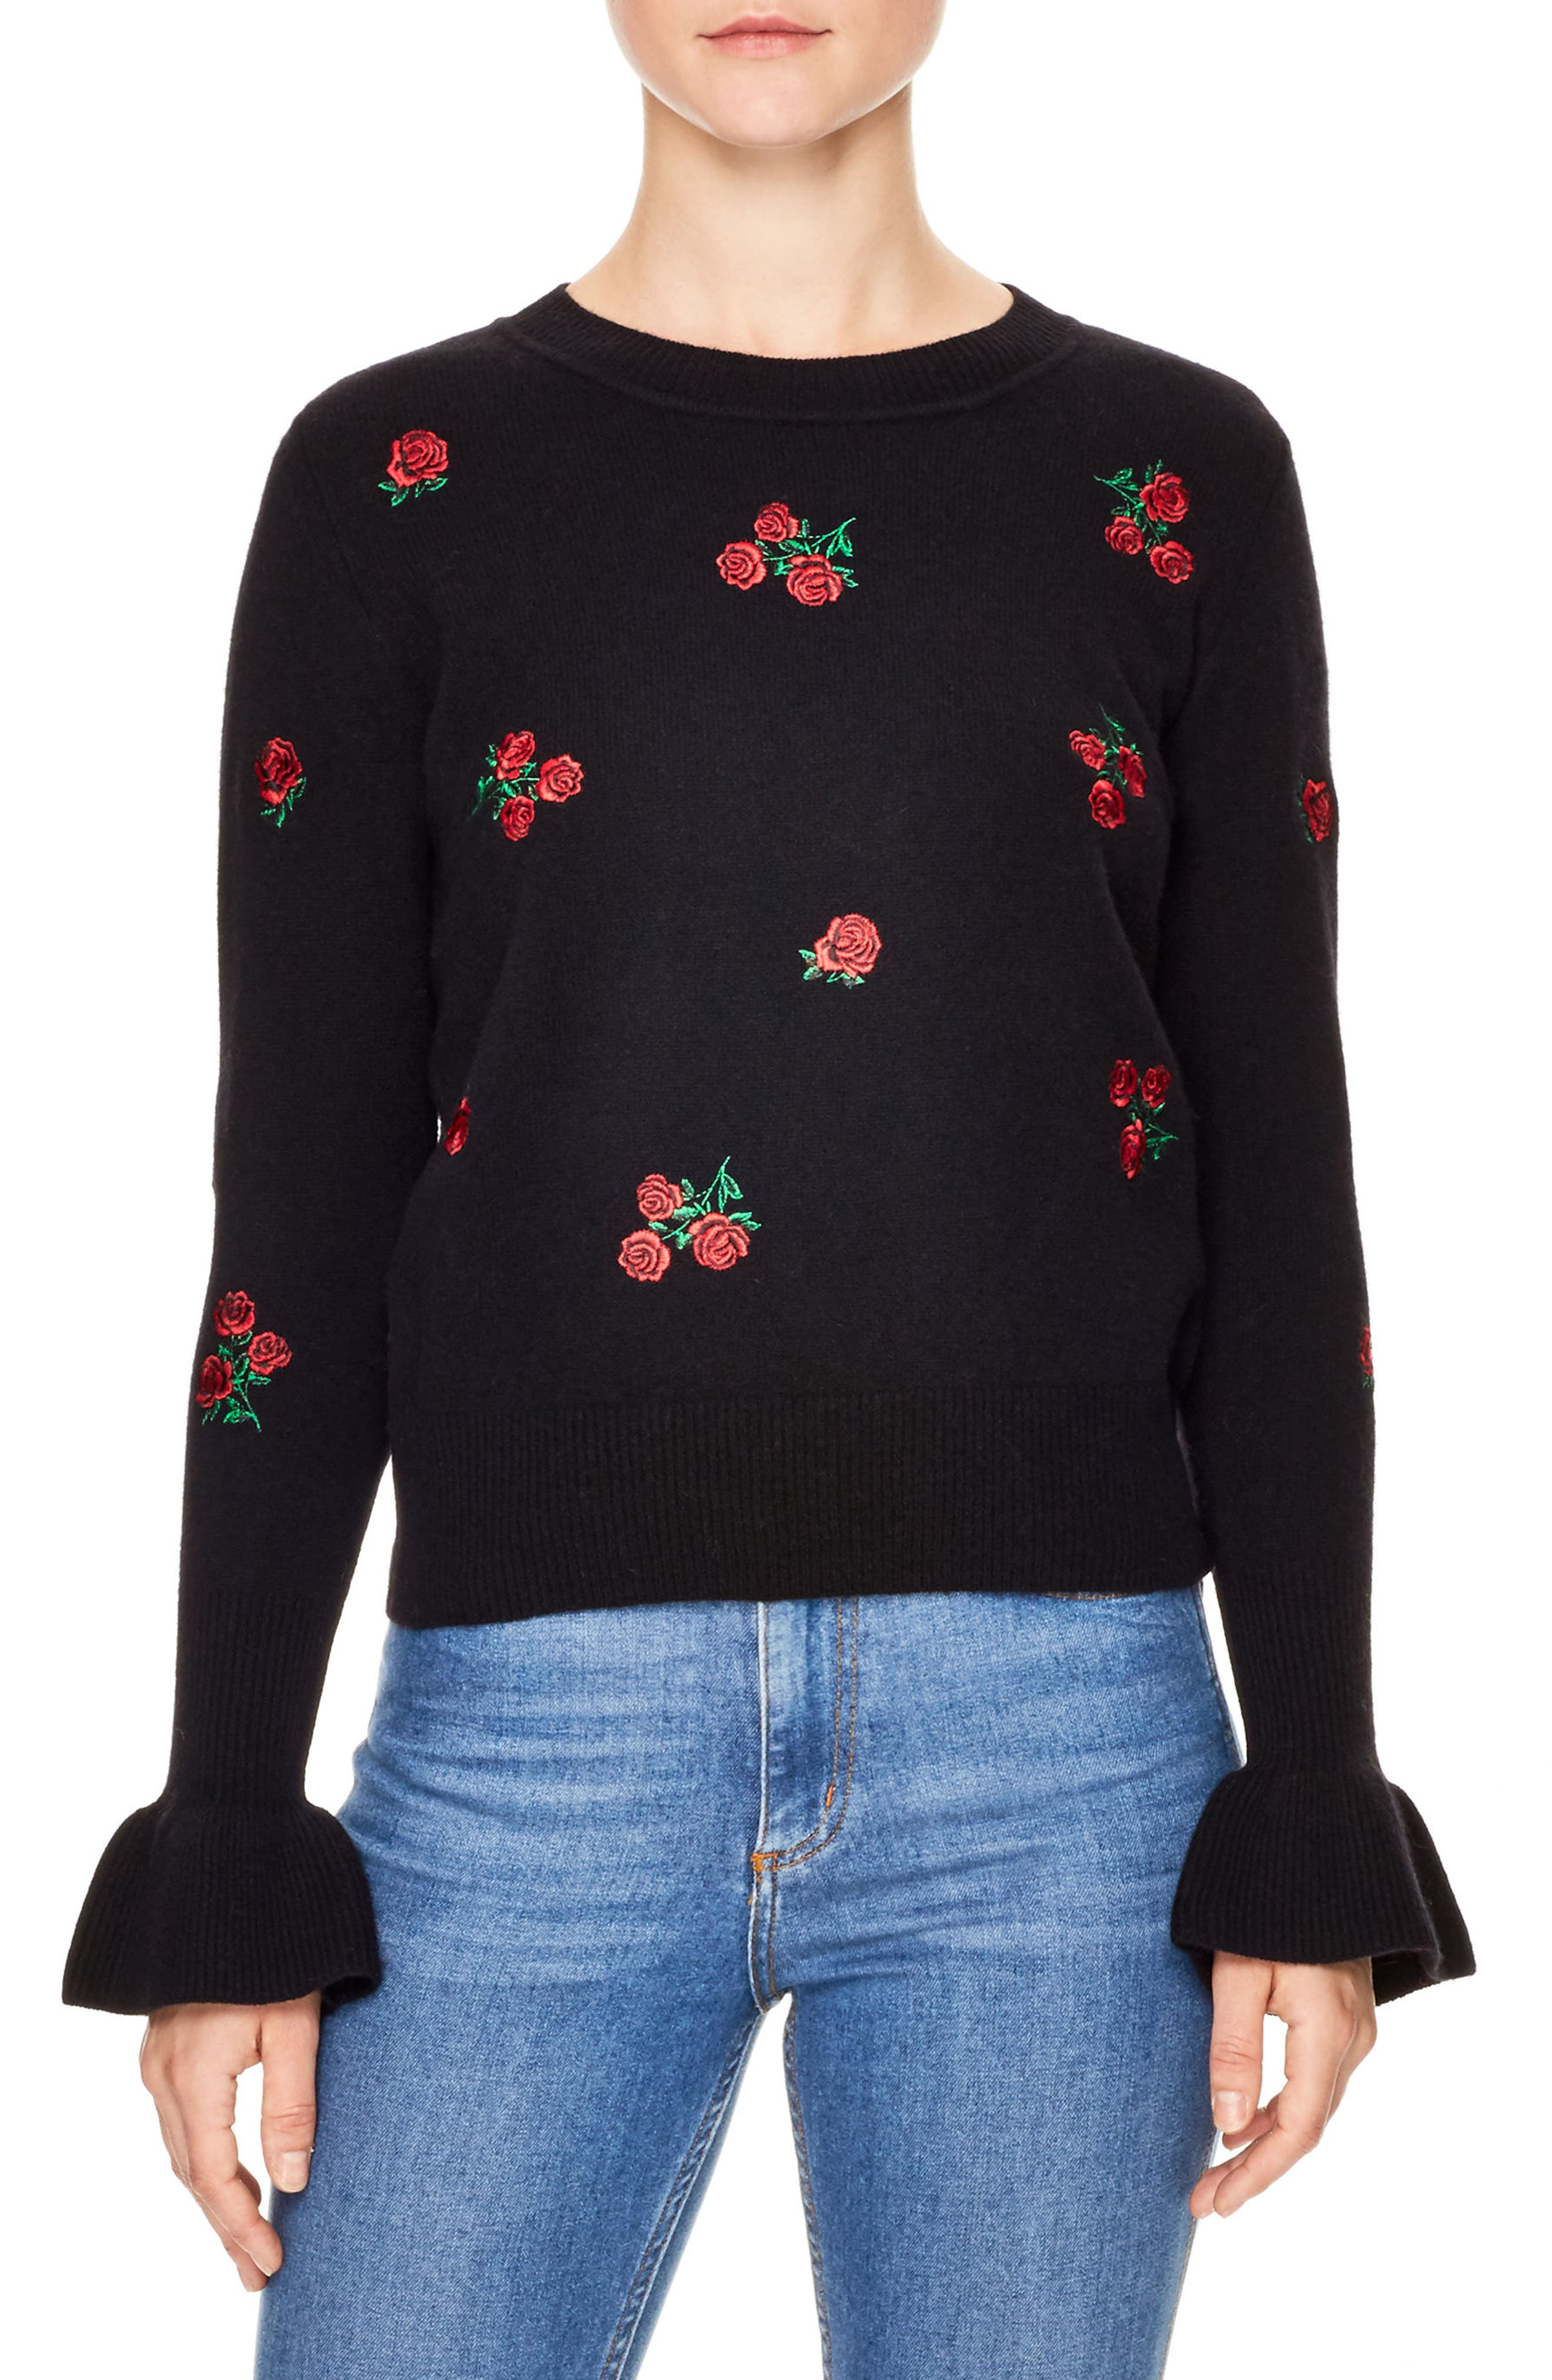 Ingrid Embroidered Wool Sweater,                             Main thumbnail 1, color,                             Black